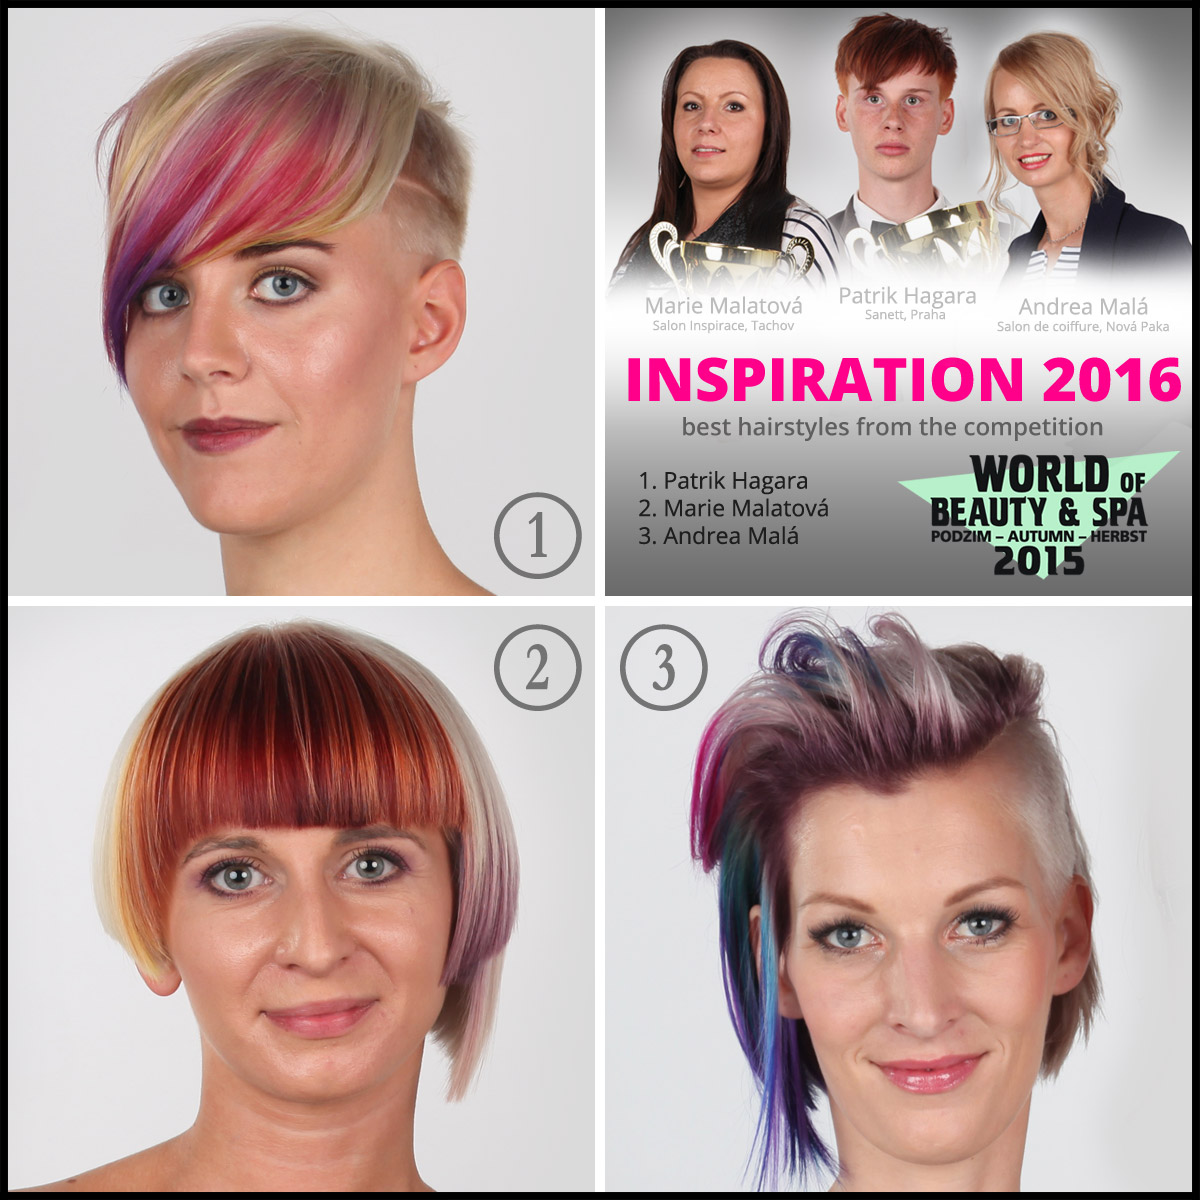 Hairstyles from the 6th year of hairdressing competition World of Beauty & Spa – Inspiration 2016.